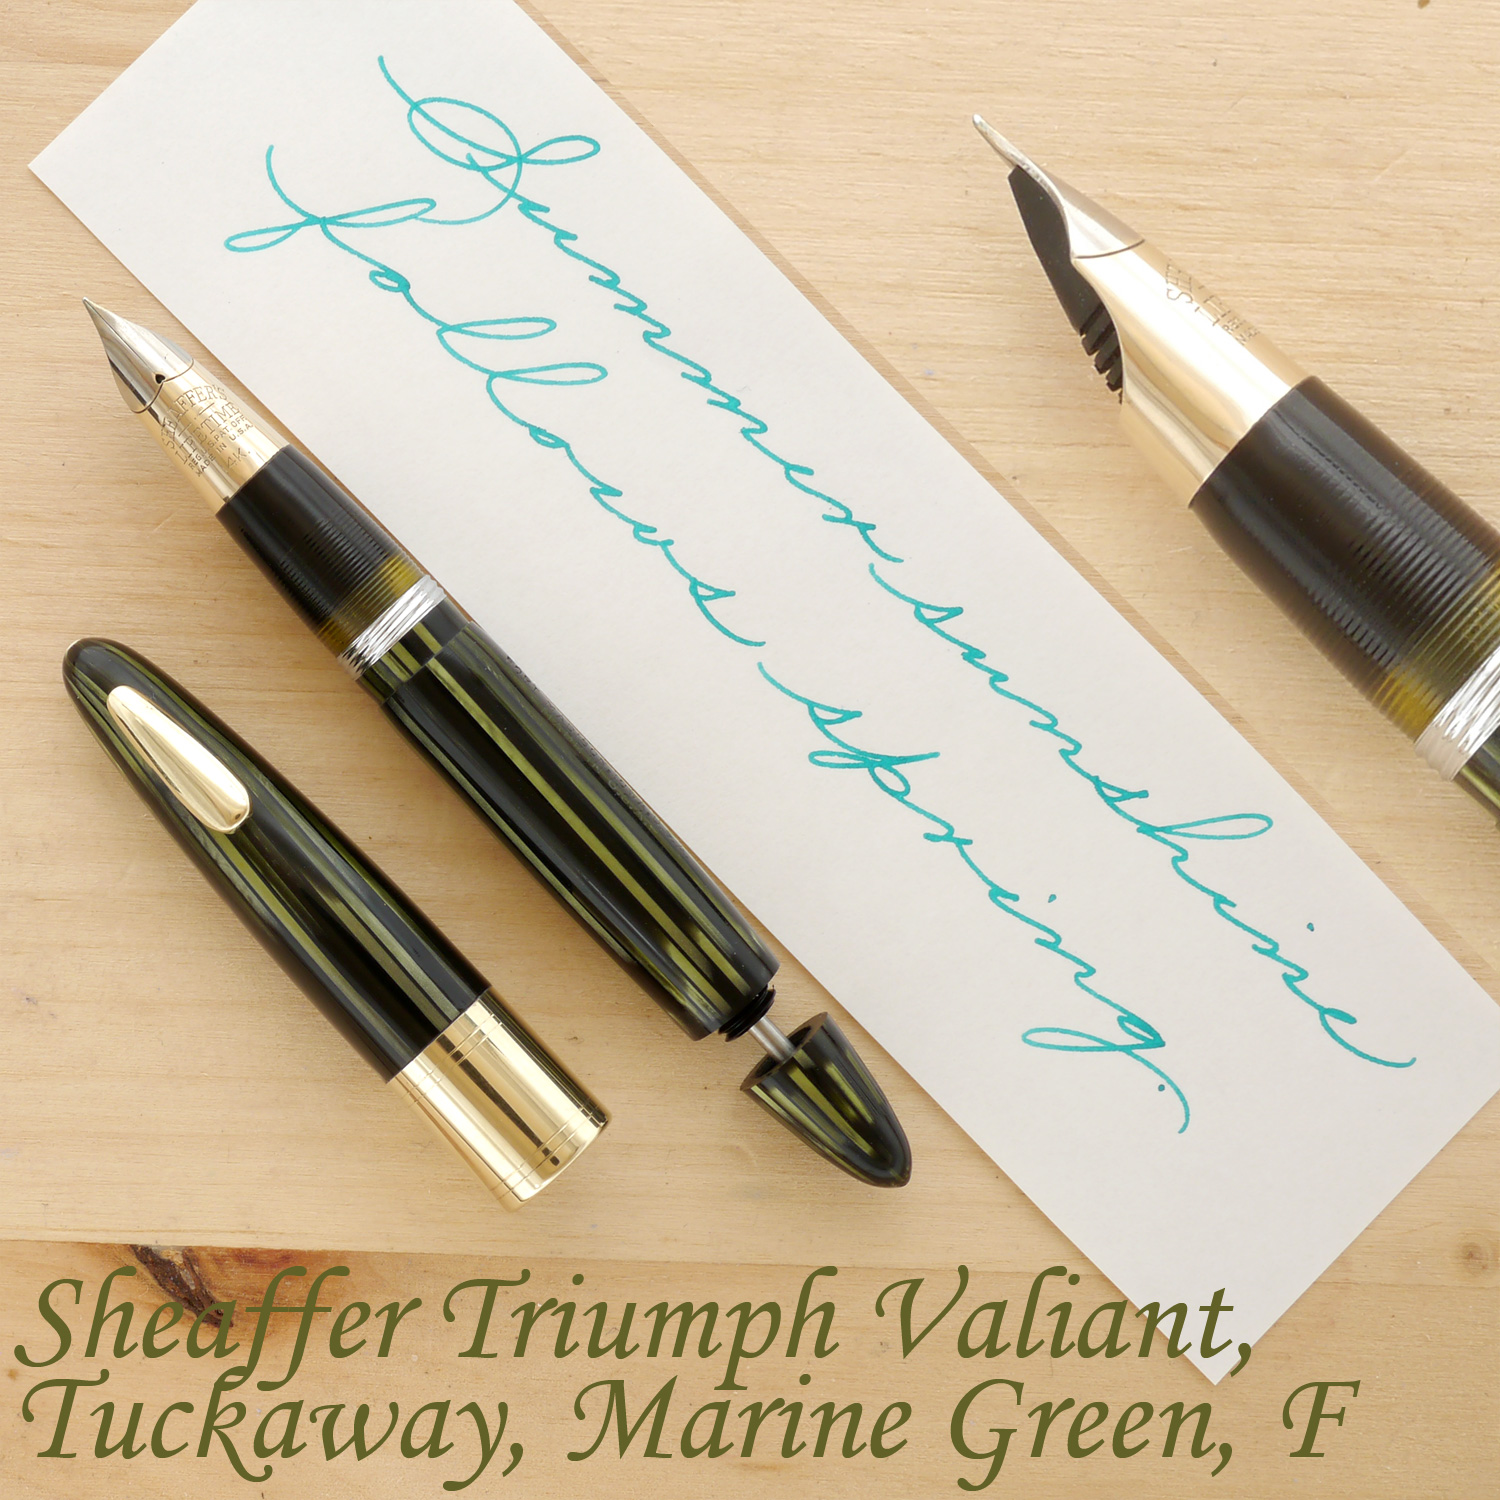 Sheaffer Triumph Valiant Tuckaway Fountain Pen, Marine Green, F, with the cap off and the plunger partially extended